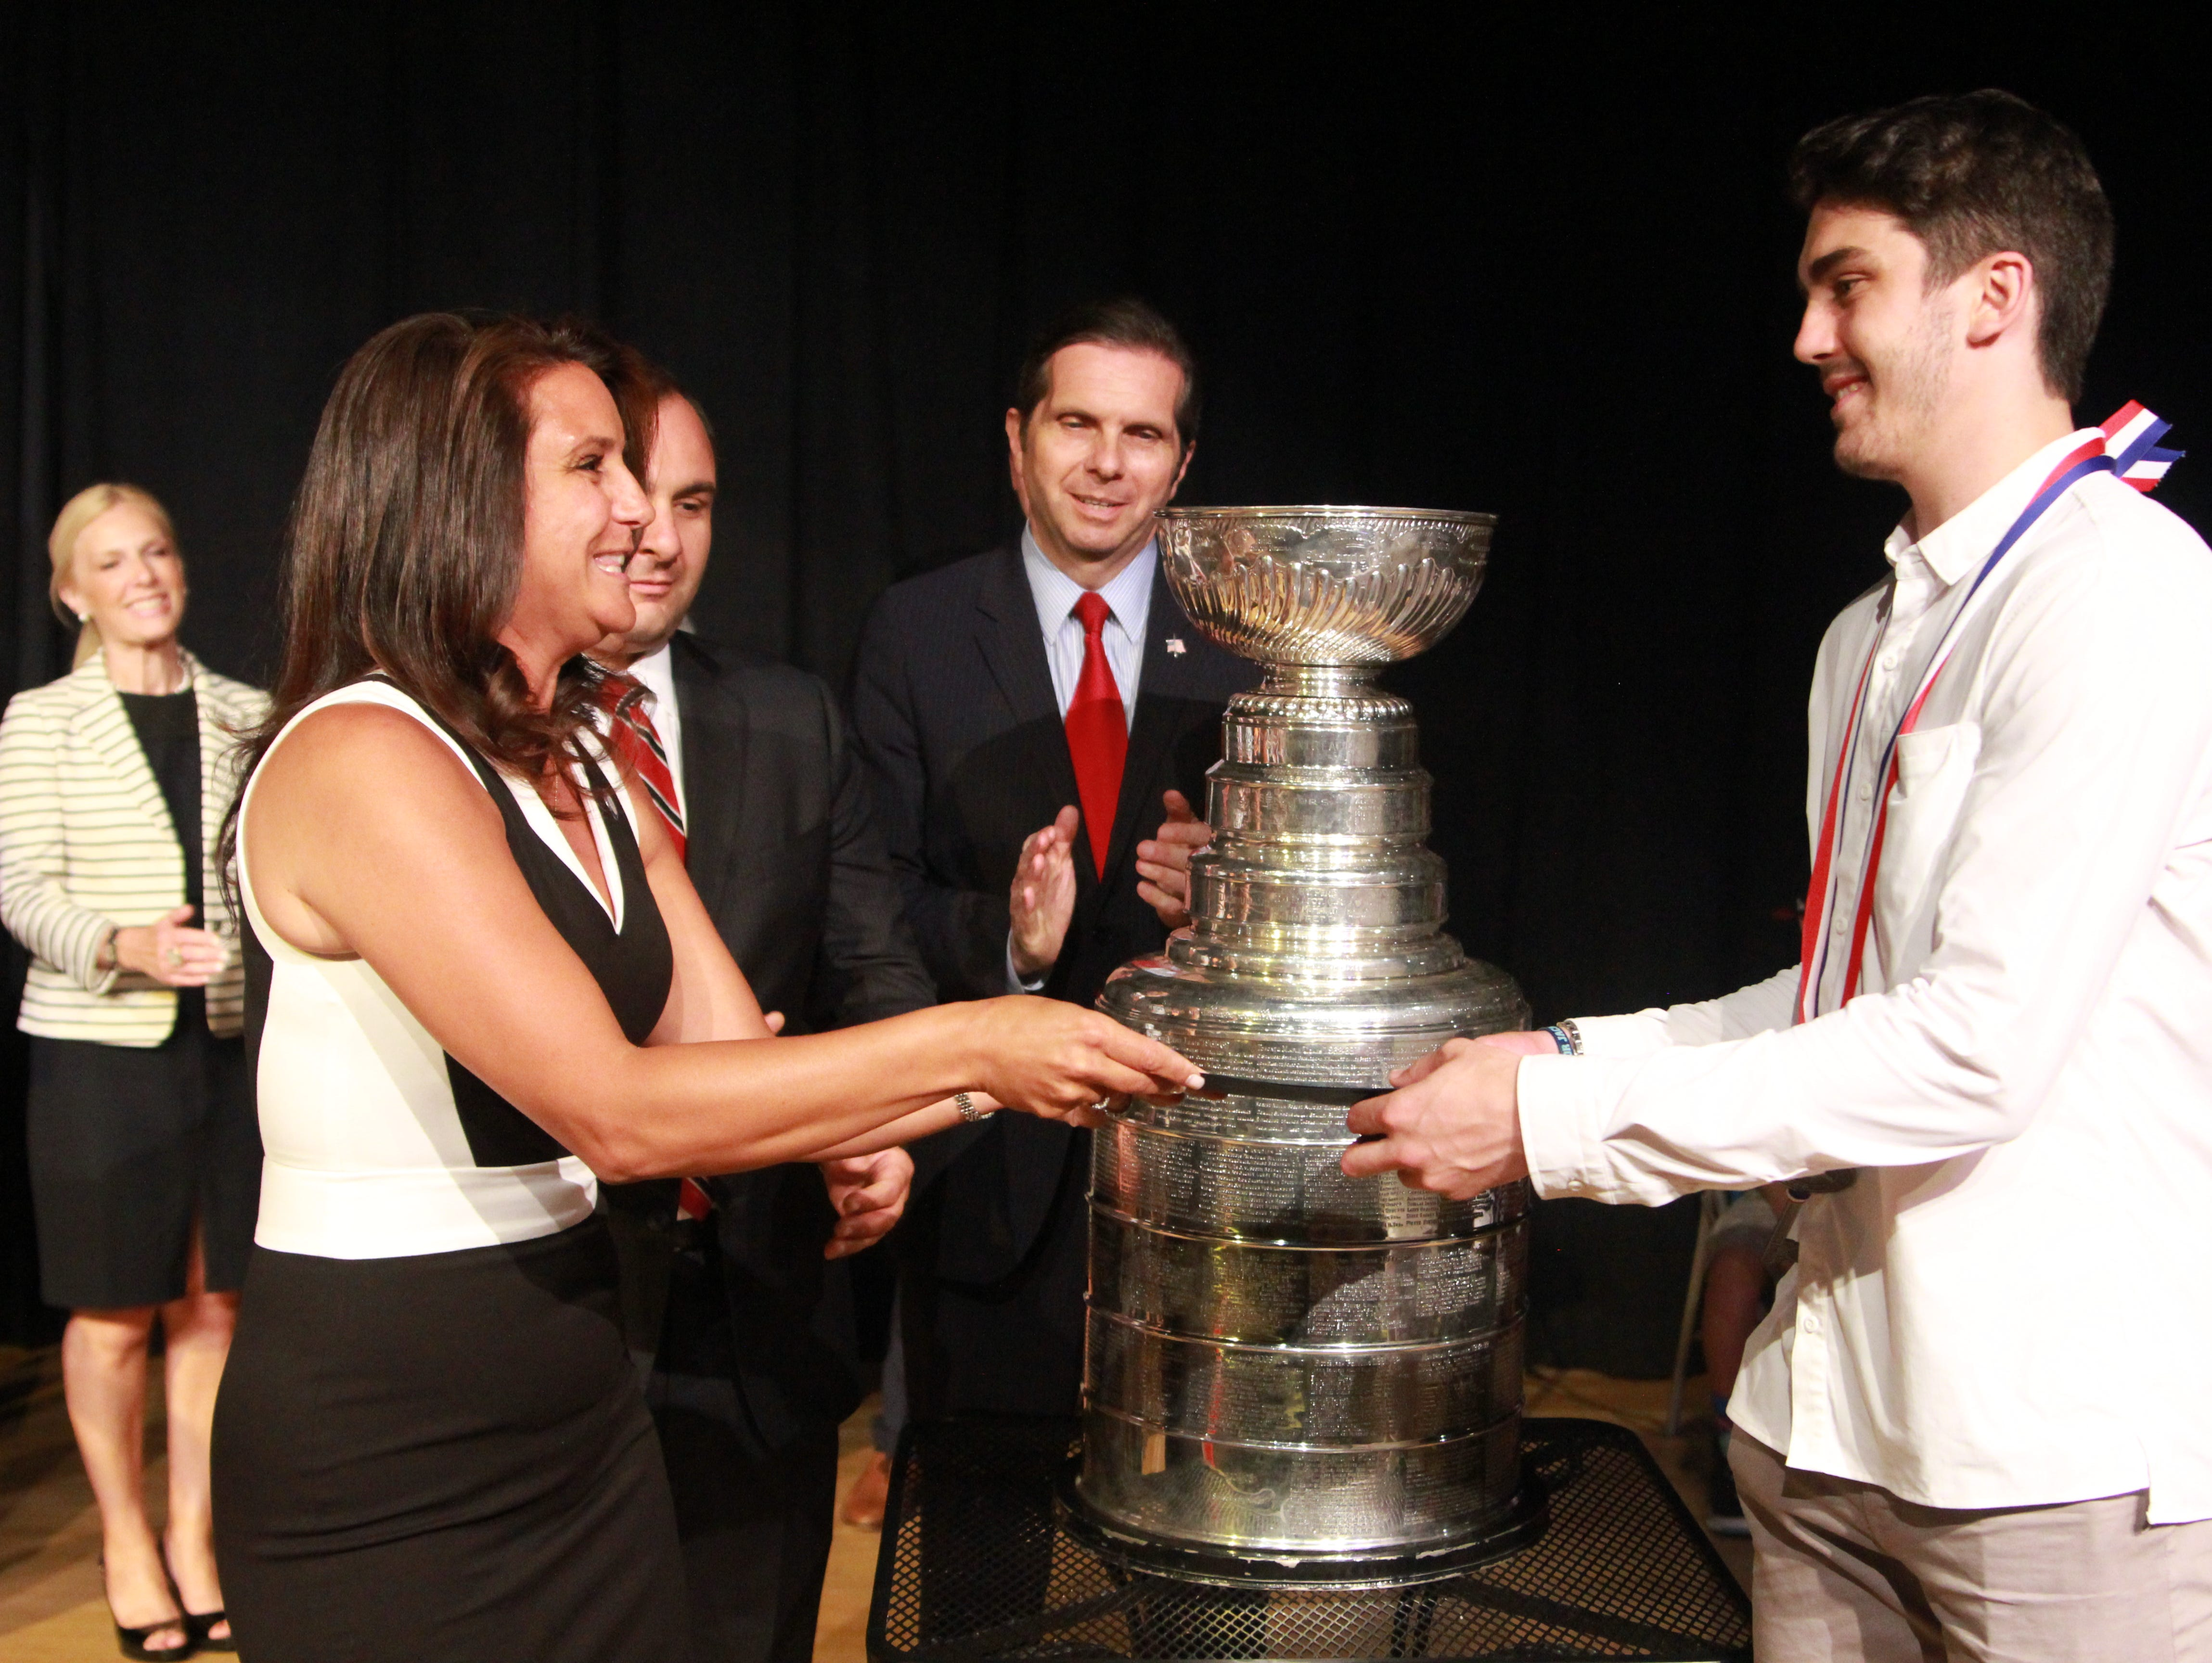 Middletown Mayor Stephanie C. Murray (left) provides Trevor van Riemsdyk with the key to the city at Middletown Arts Center.